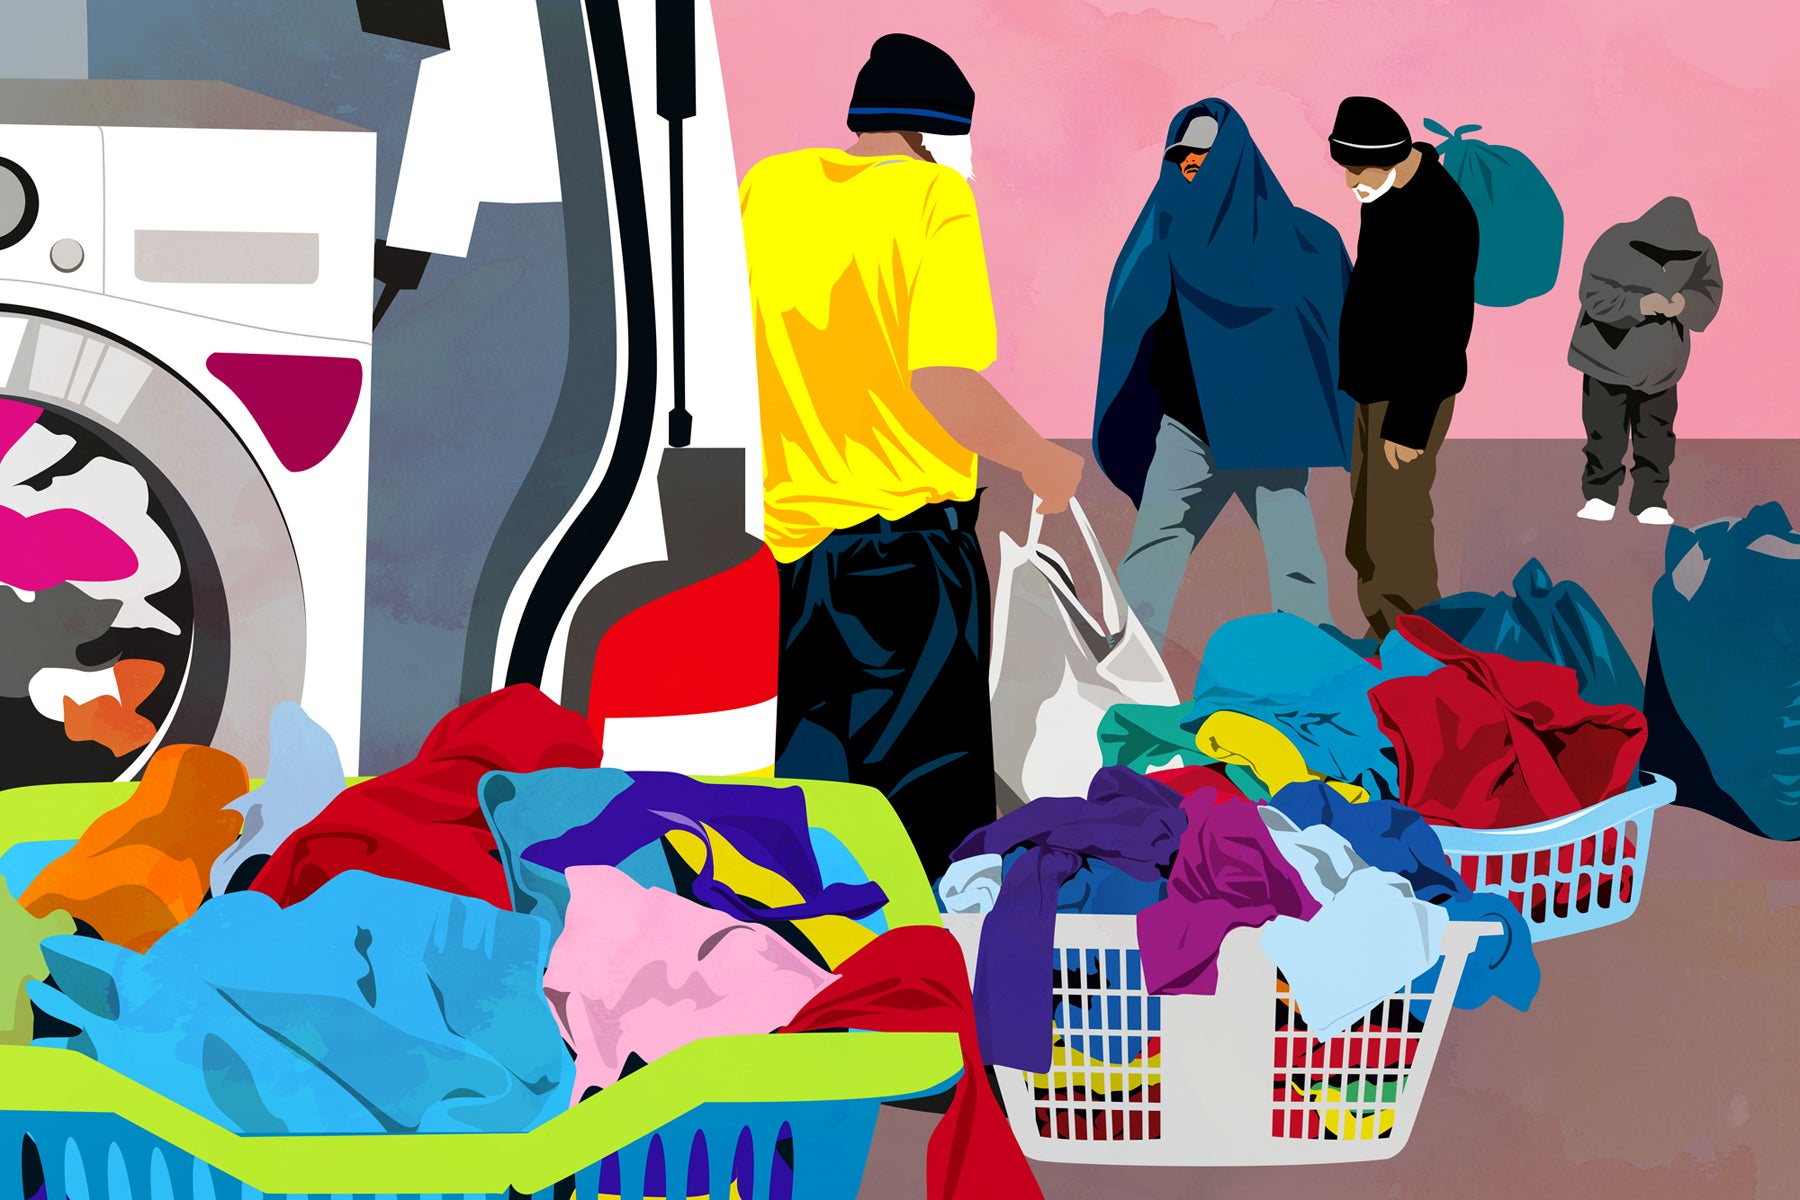 Illustration of homeless men with overflowing baskets of laundry next to the Ithaca Laundry van.